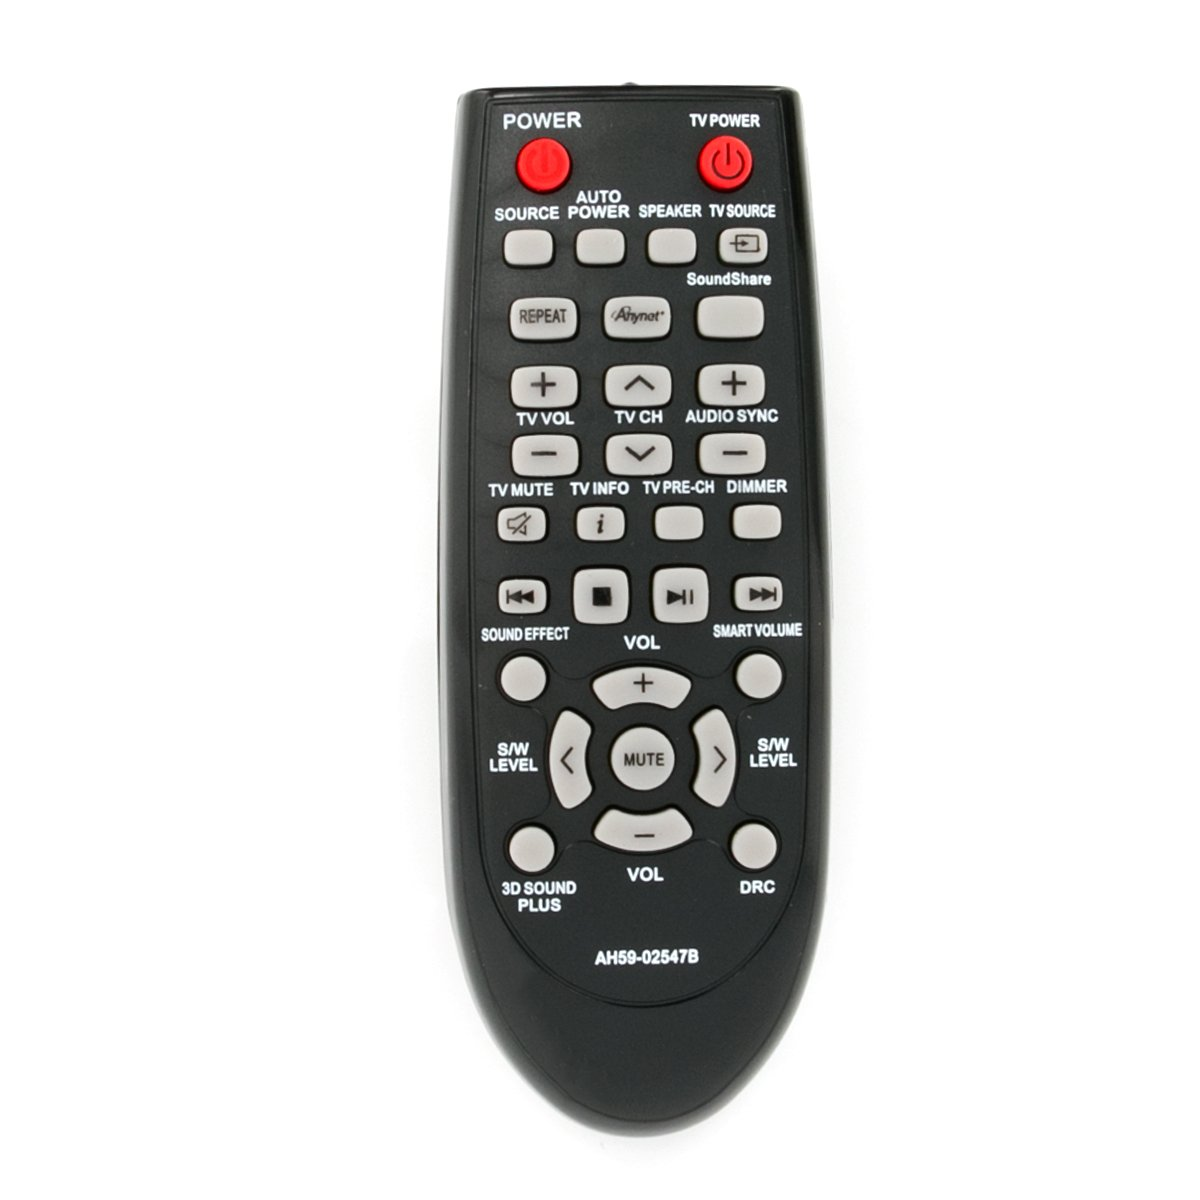 New AH59-02547B Replaced Remote fit for Samsung Sound Bar AH68-02644D-00 HW-F450ZA HW-F450 PS-WF450 HWF450ZA HWF450 PSWF450